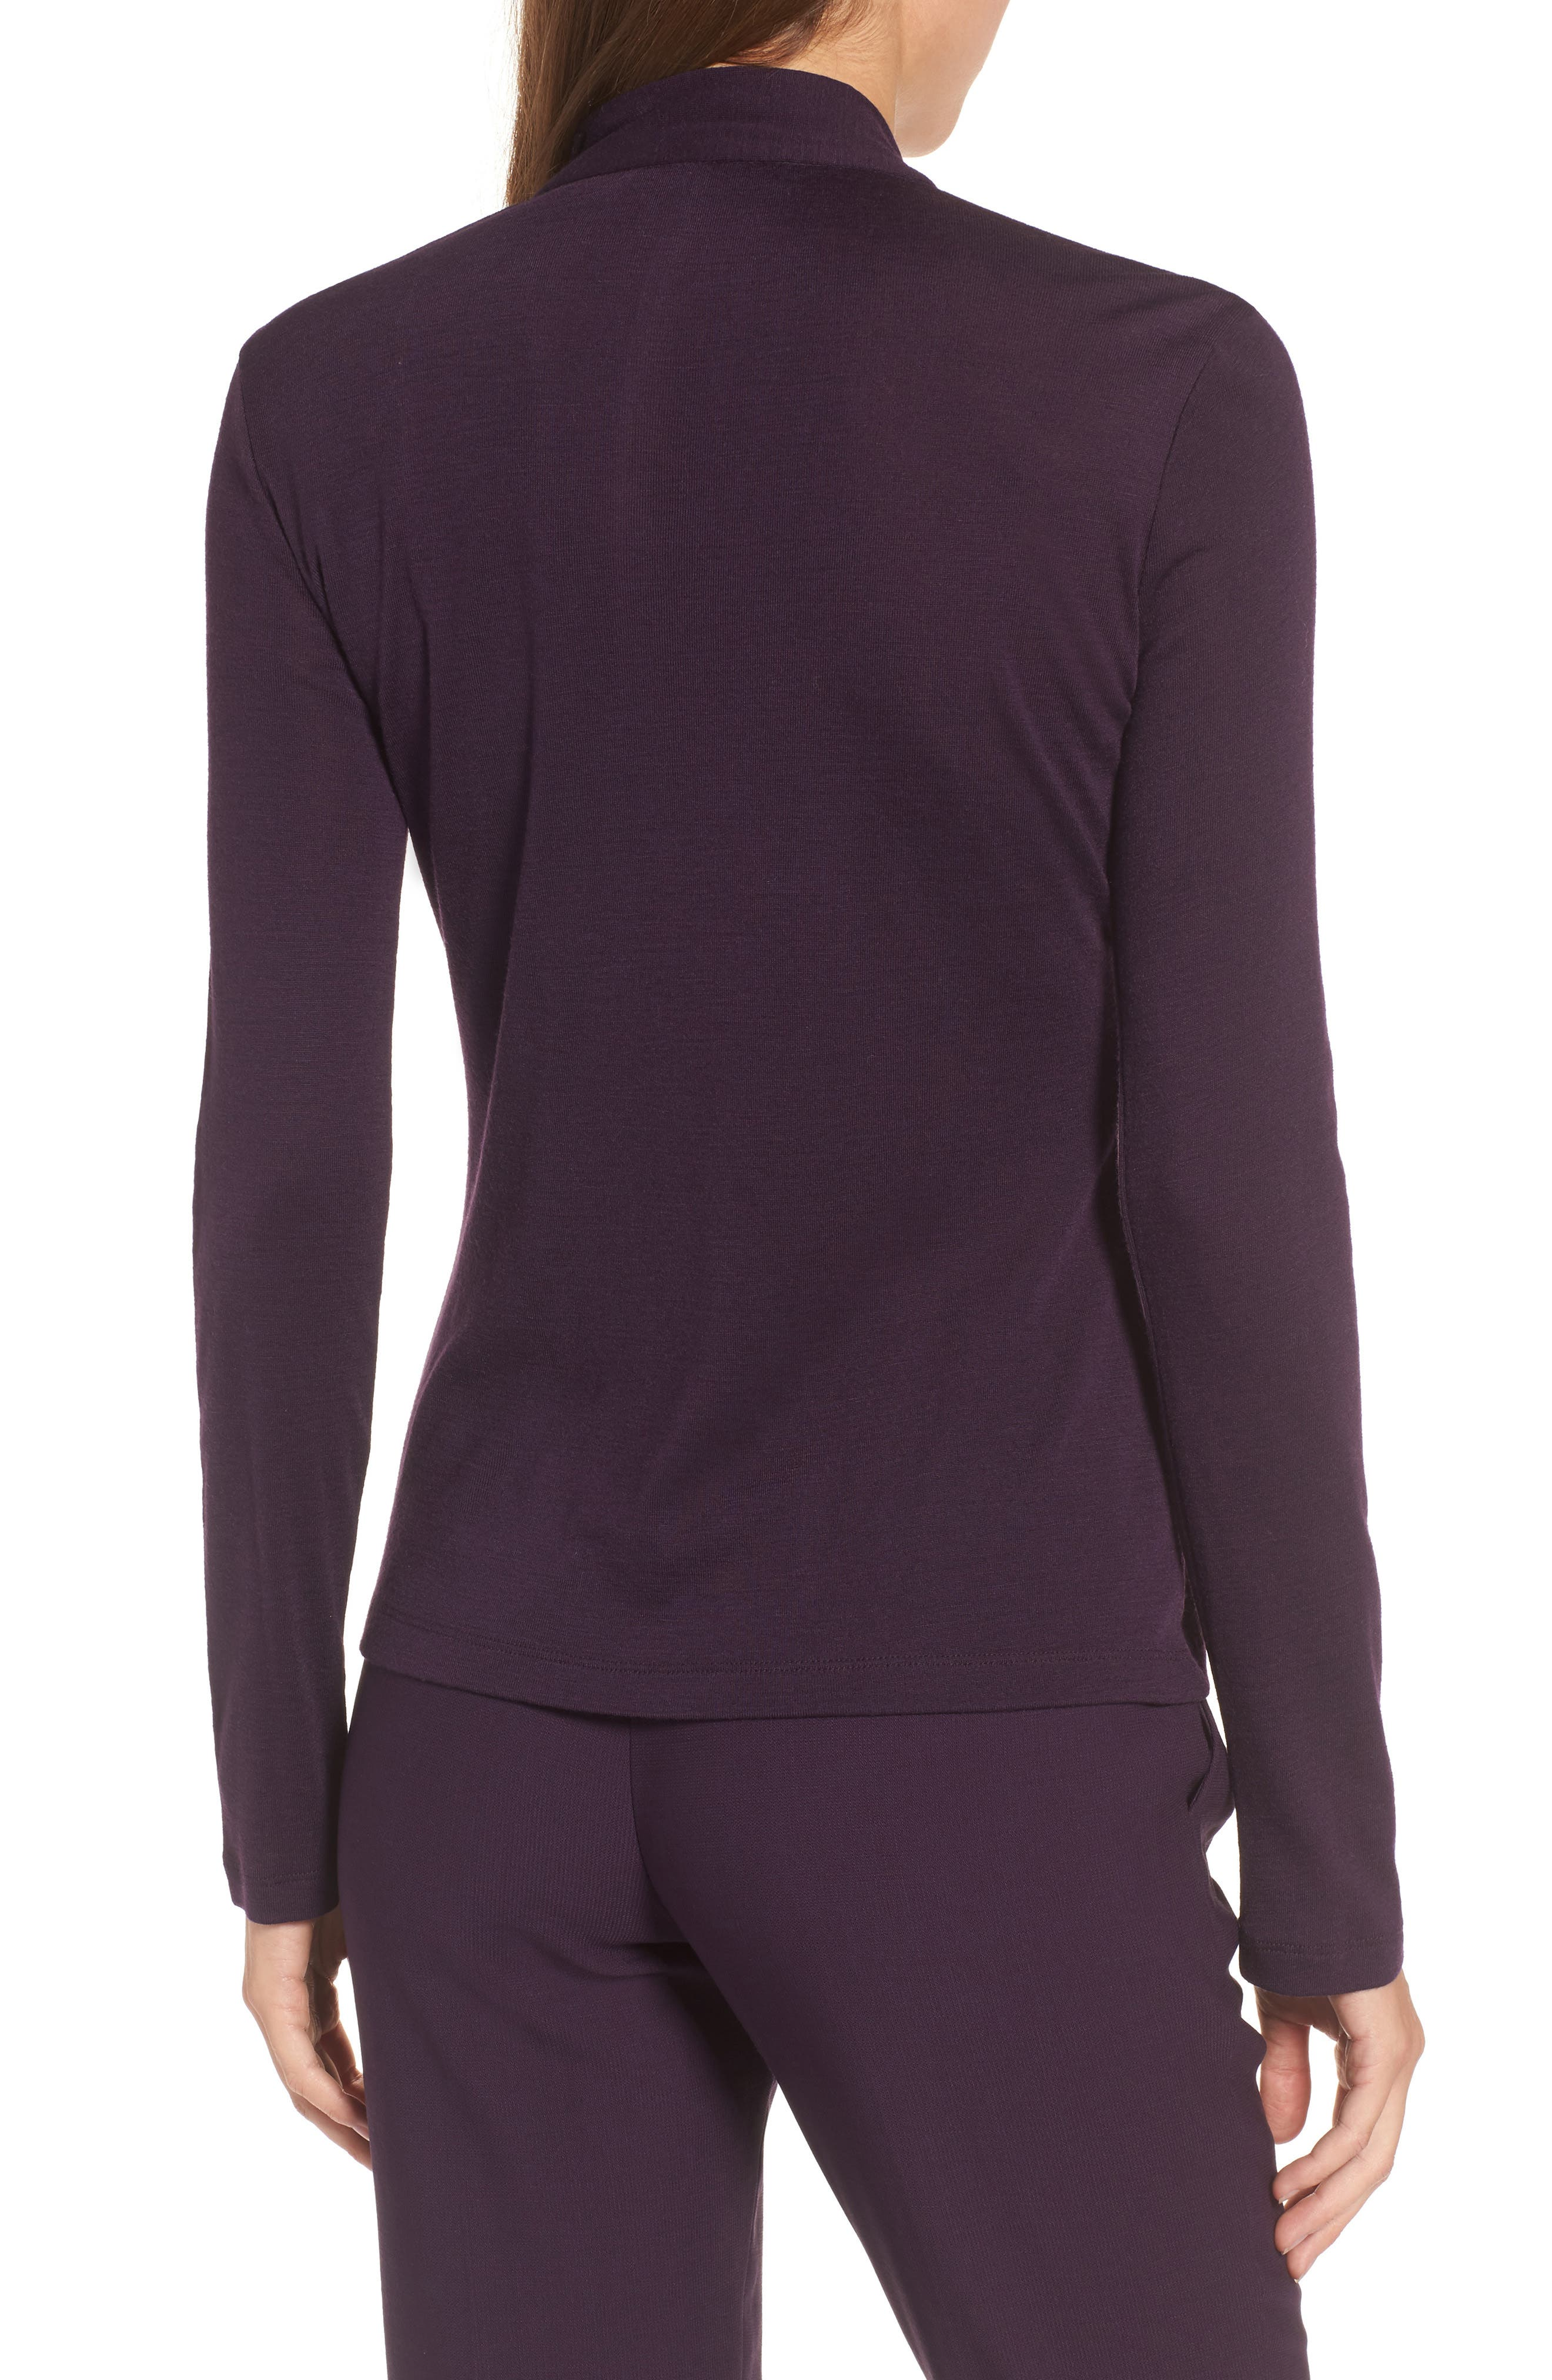 Alternate Image 2  - BOSS Epina Keyhole Jersey Top (Nordstrom Exclusive)